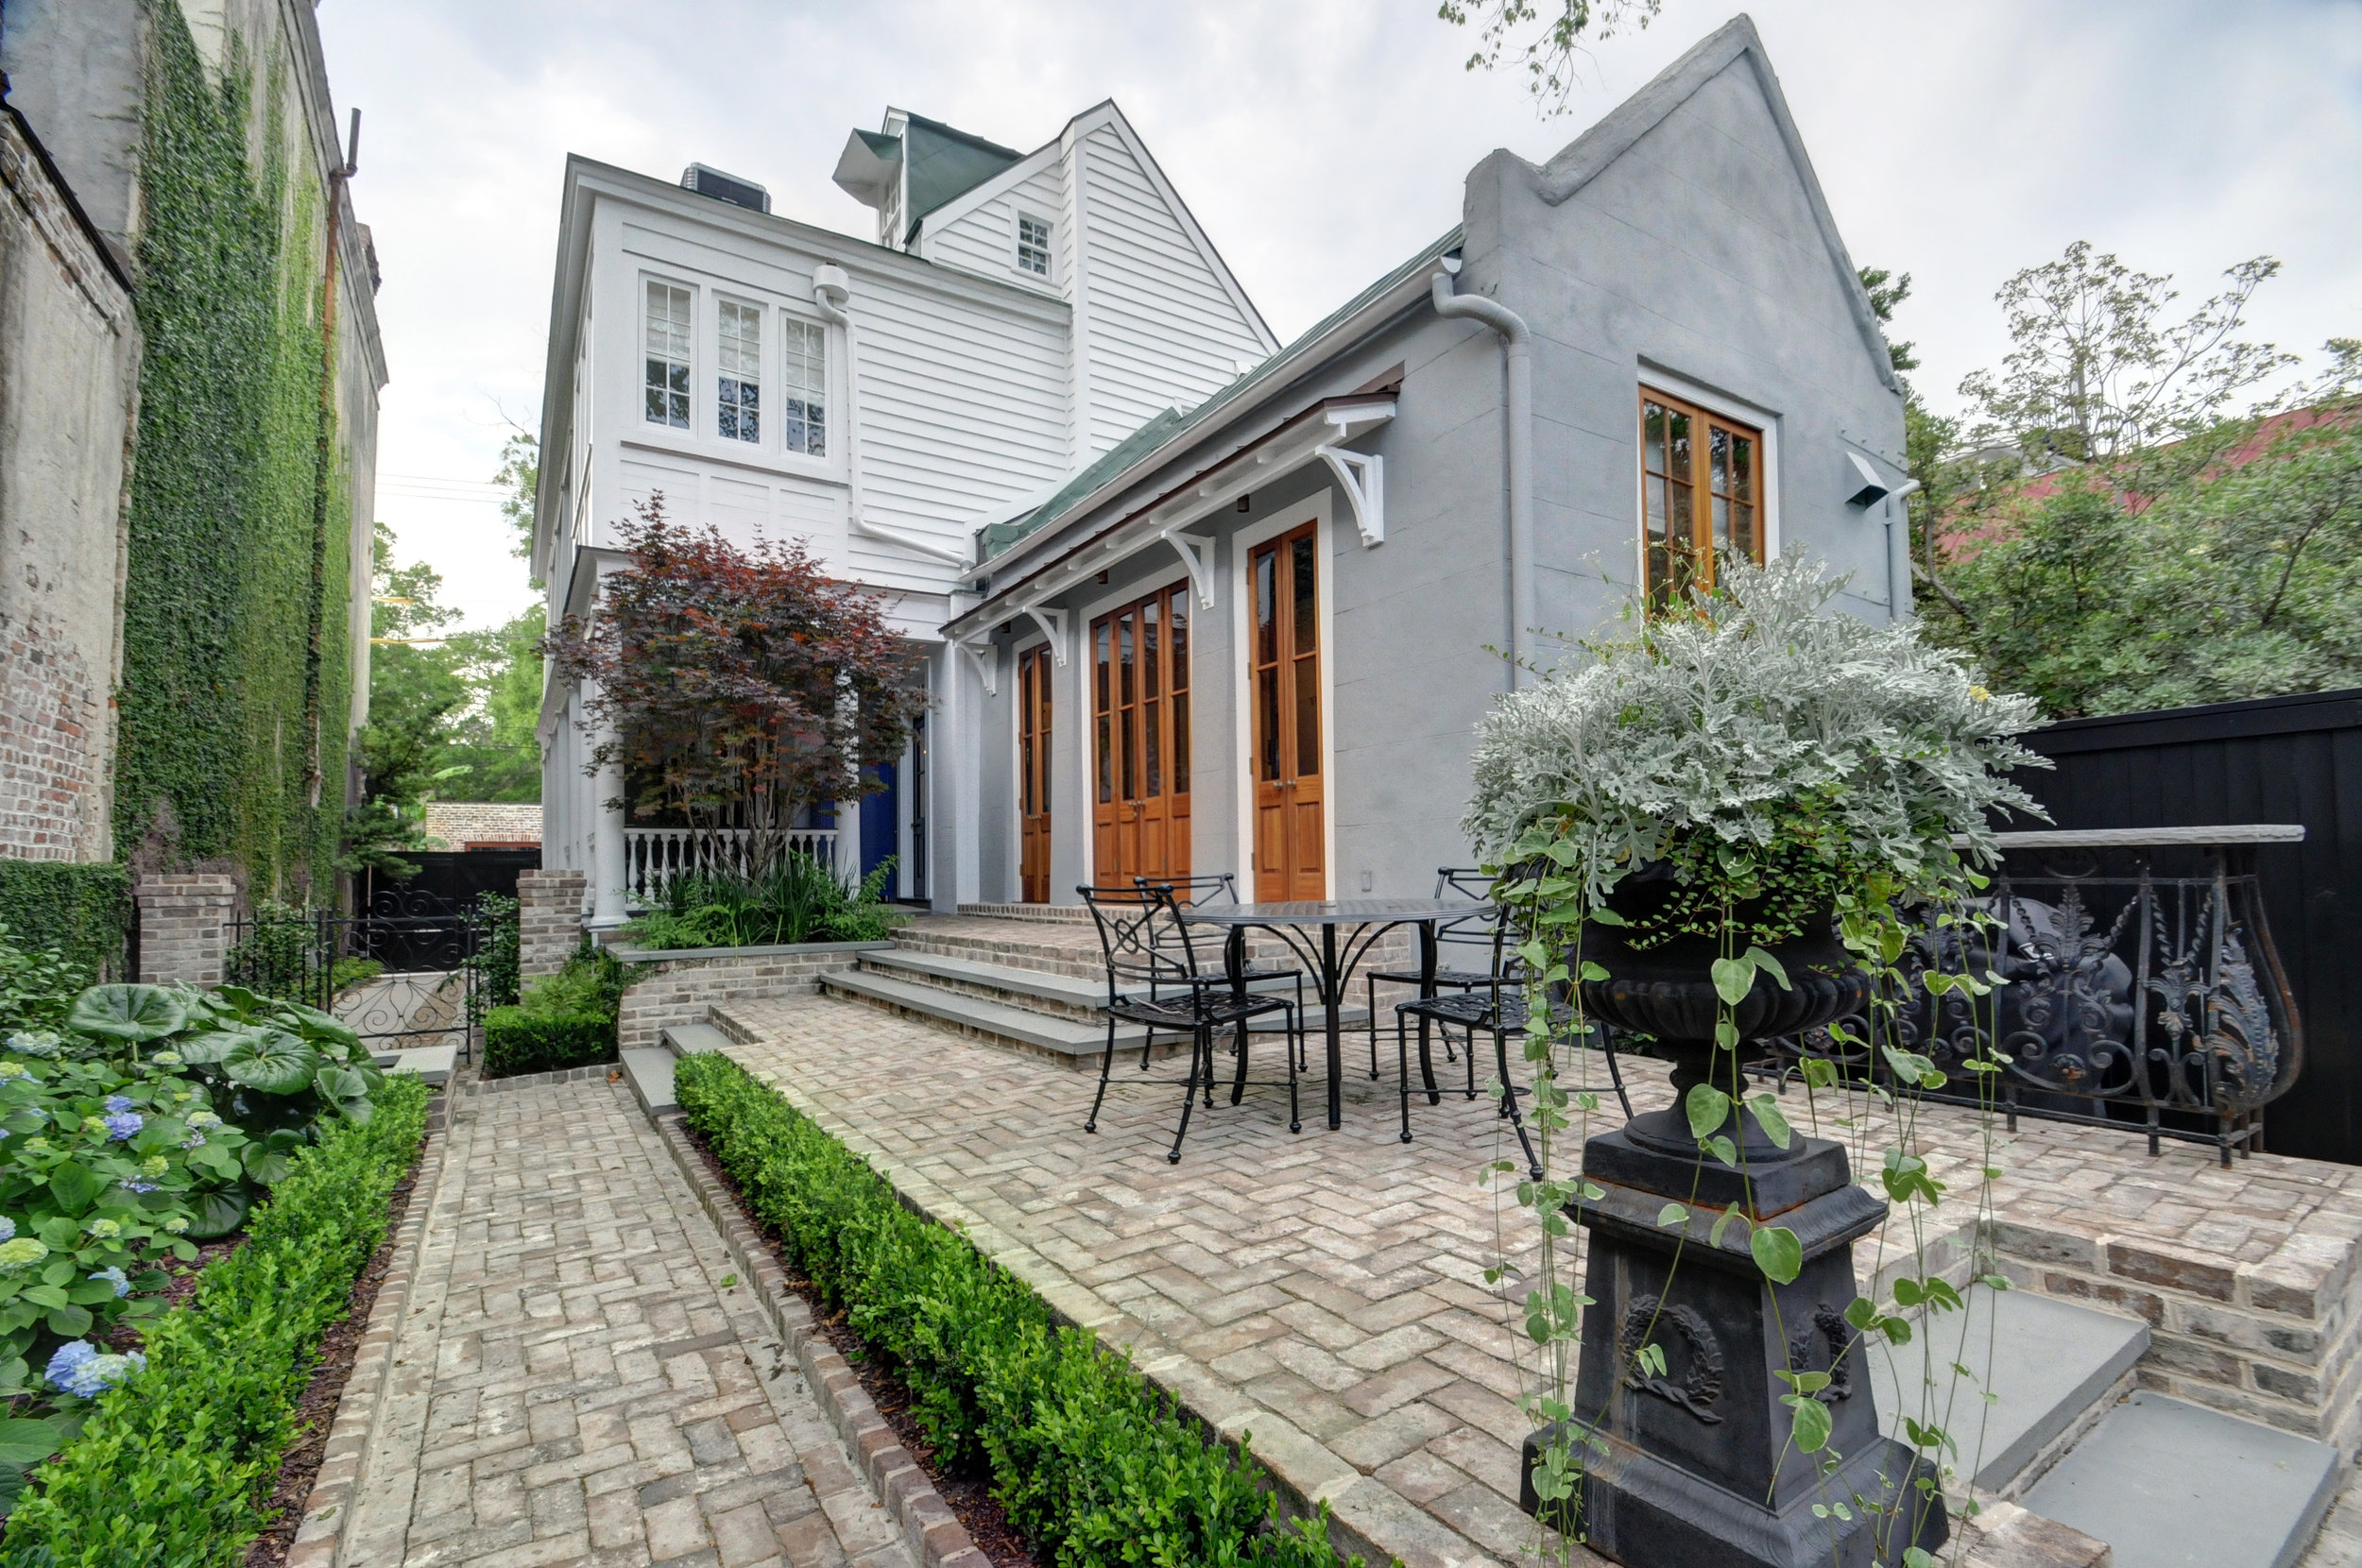 - May 15, 2017This renovation at 41 Society Street involved the re-imagining of a kitchen house and its relationship to the garden. The raised patio works as an extension of the piazza and the kitchen, tying the two together. The team at Wertimer + Cline Landscape Architects did a wonderful job with this garden landscape. The owner's vision made this project a successful design collaboration. More to come soon on the website.